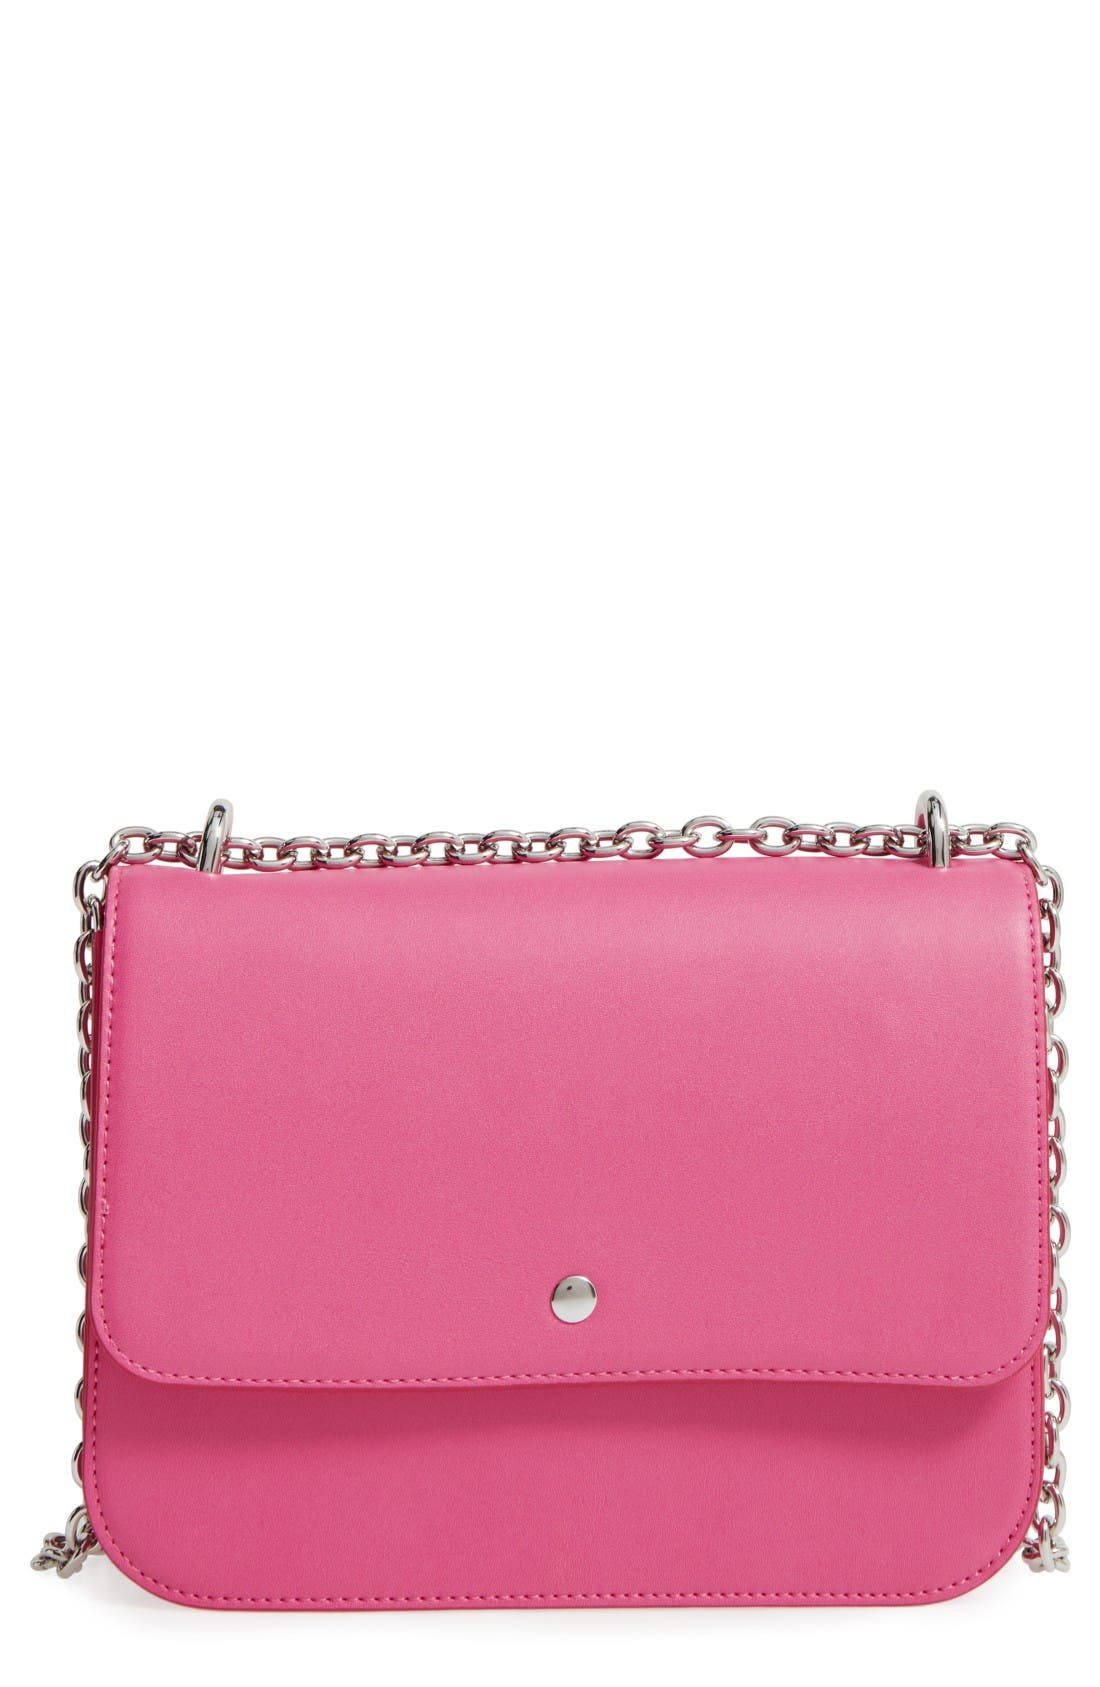 Main Image - Chelsea28 Dahlia Faux Leather Shoulder Bag